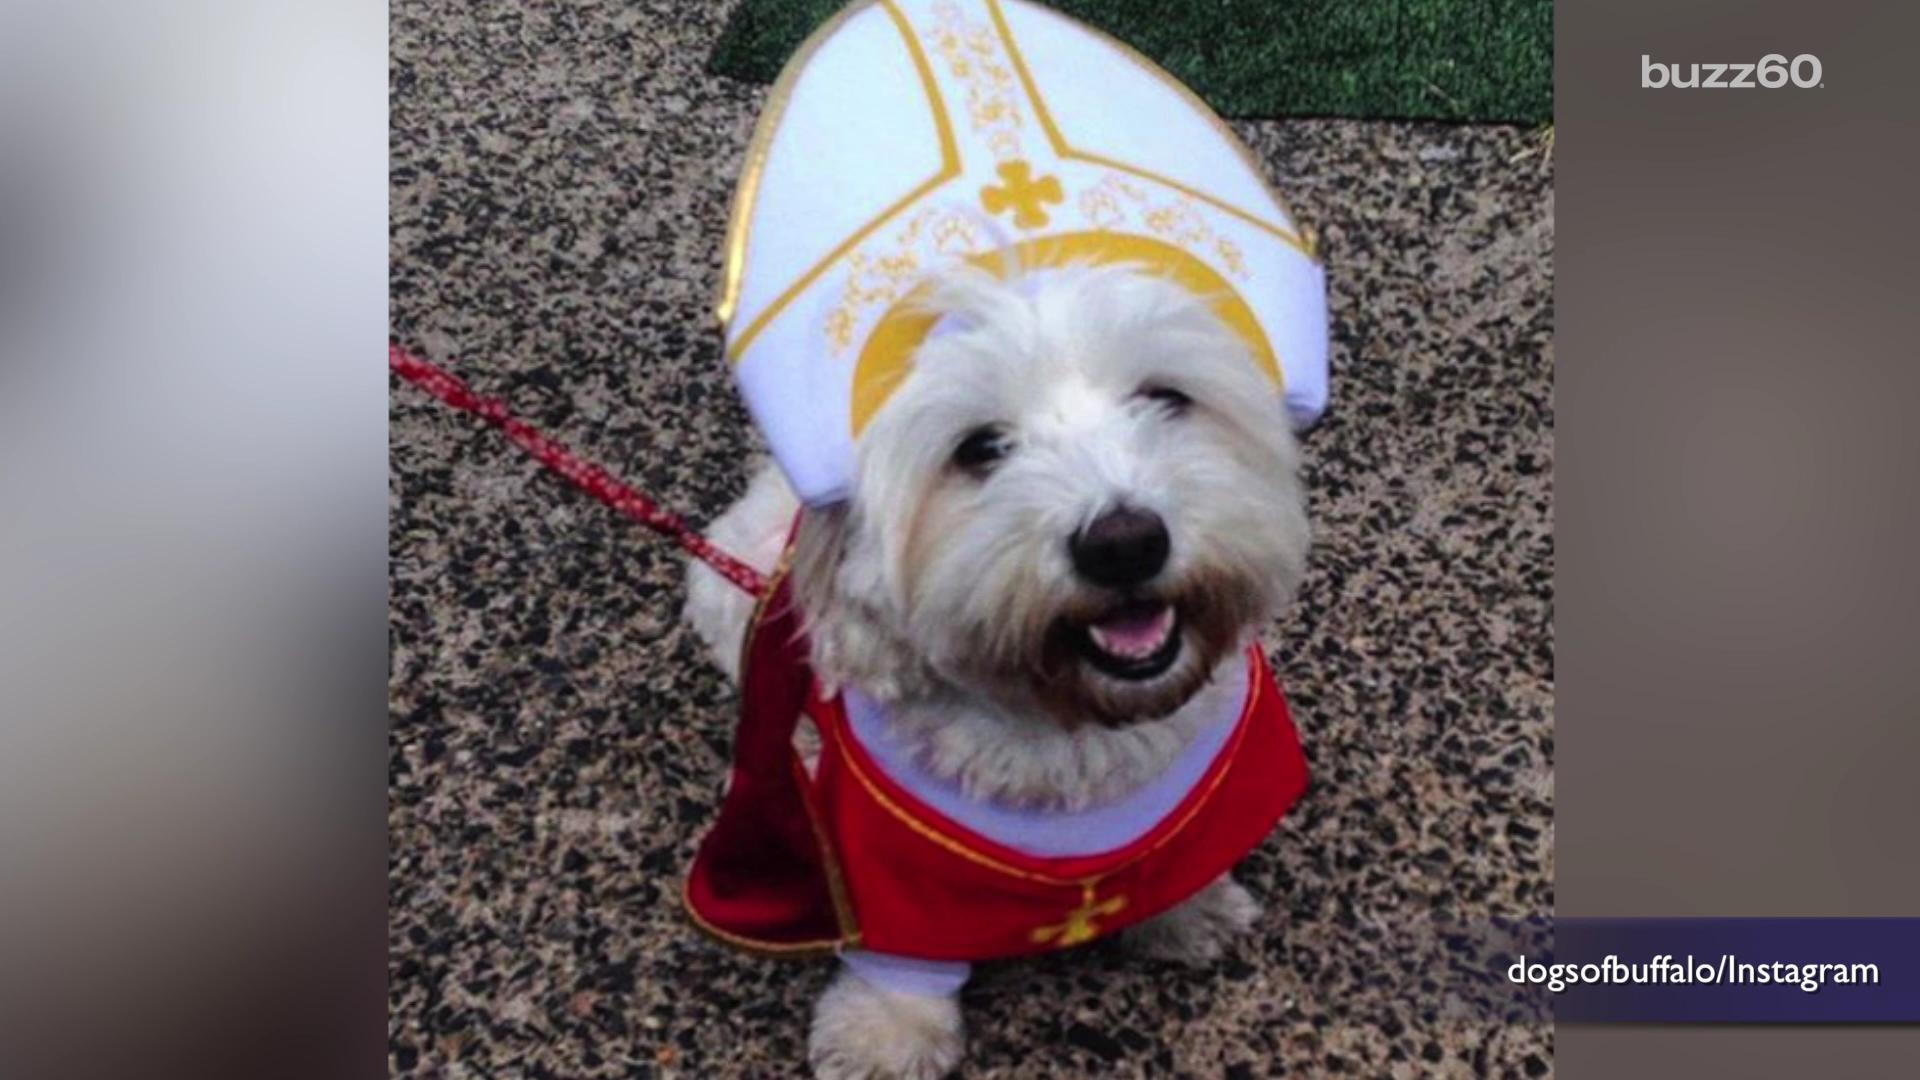 #PopeDog may be one of the best things about the Papal visit